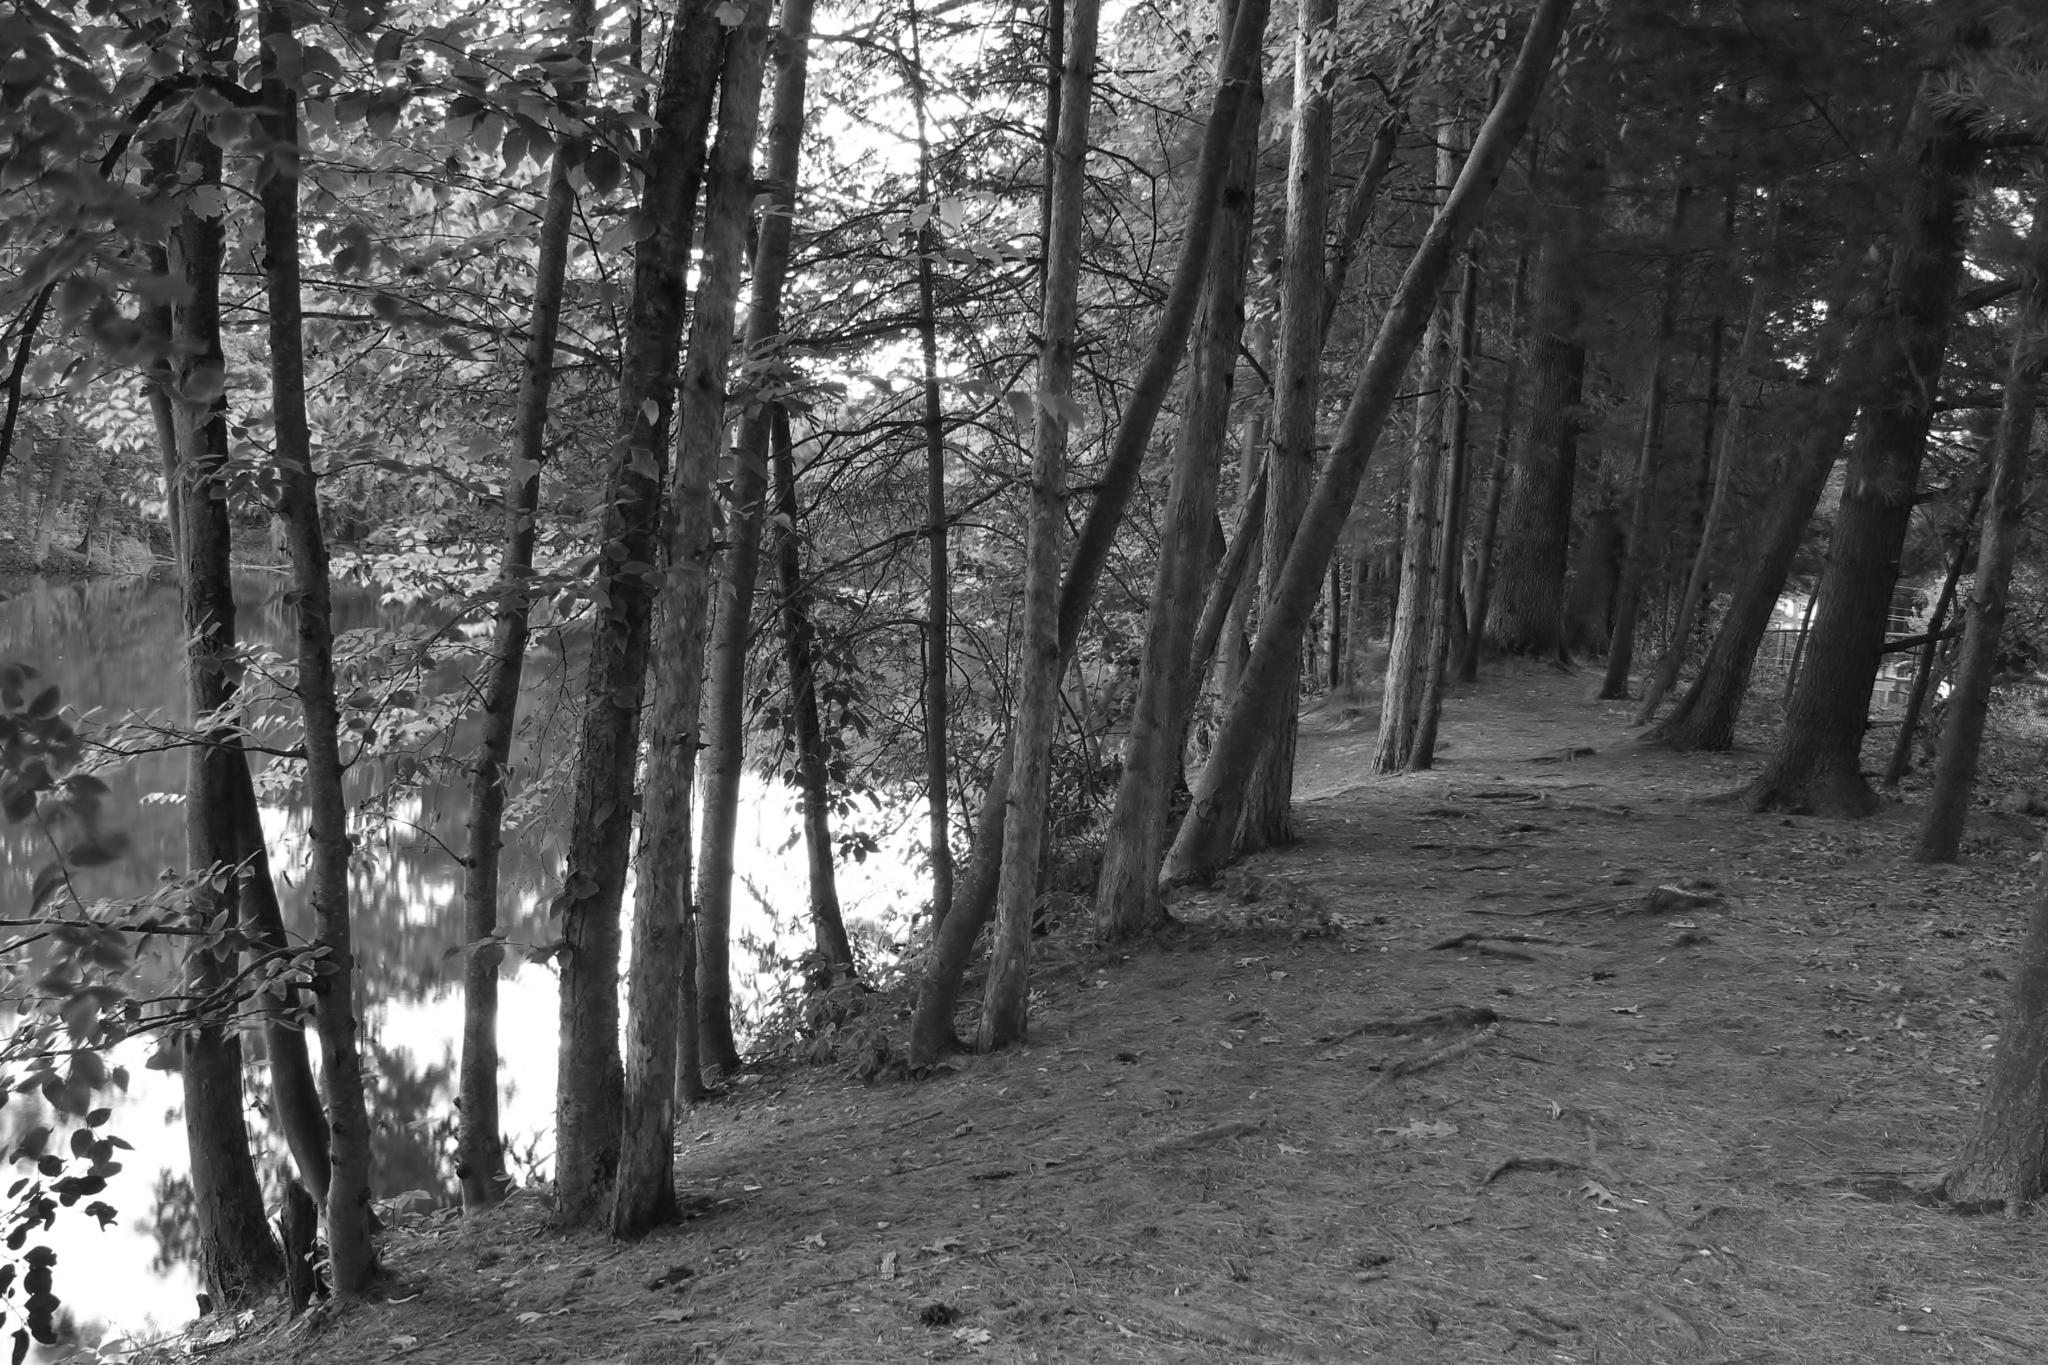 Trail of Trees by debbie.lamontesnyder